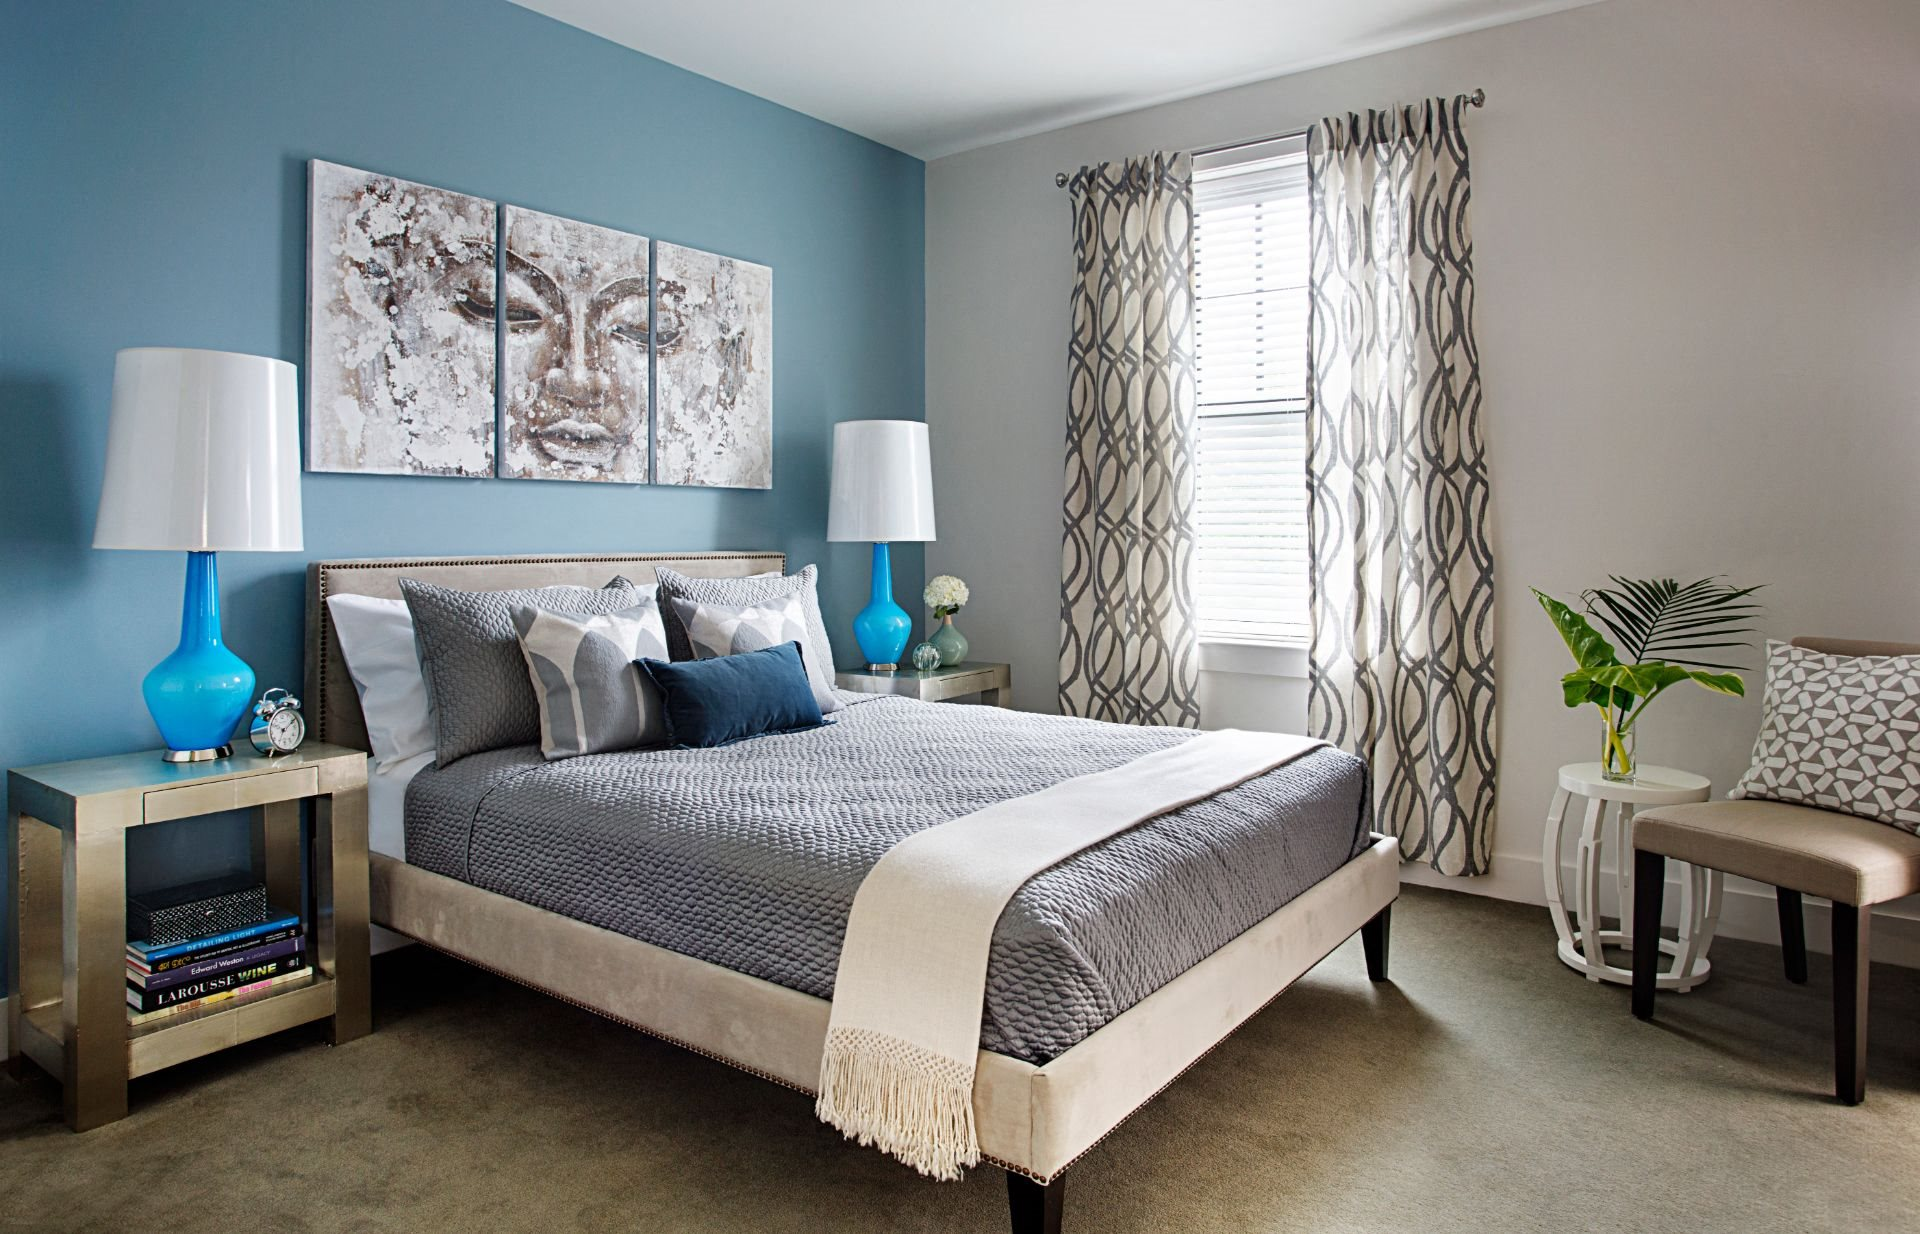 Bedroom Interior Large Enough for King Size Bedroom Set with Large Window and High-End Hard Surface Flooring at Gatehouse 75, Massachusetts, 02129